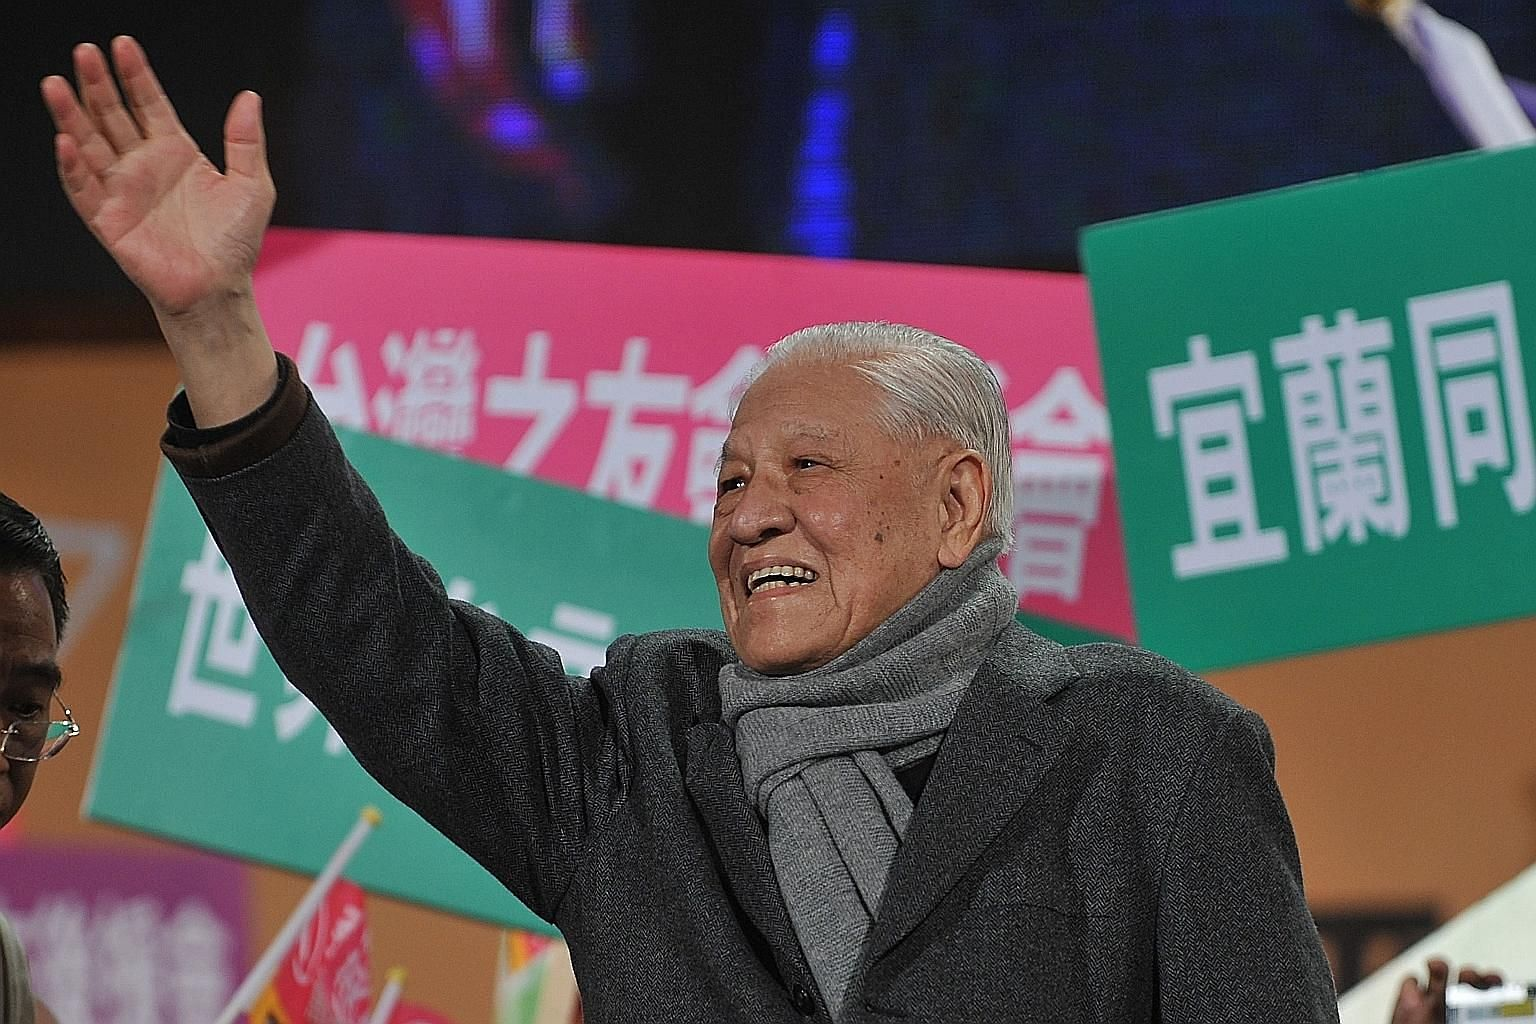 A Jan 13, 2012, file photo of Taiwan's former president and chairman of the Kuomintang Party Lee Teng-hui waving at a rally for the island's then main opposition Democratic Progressive Party presidential candidate Tsai Ing-wen. PHOTO: AGENCE FRANCE-P